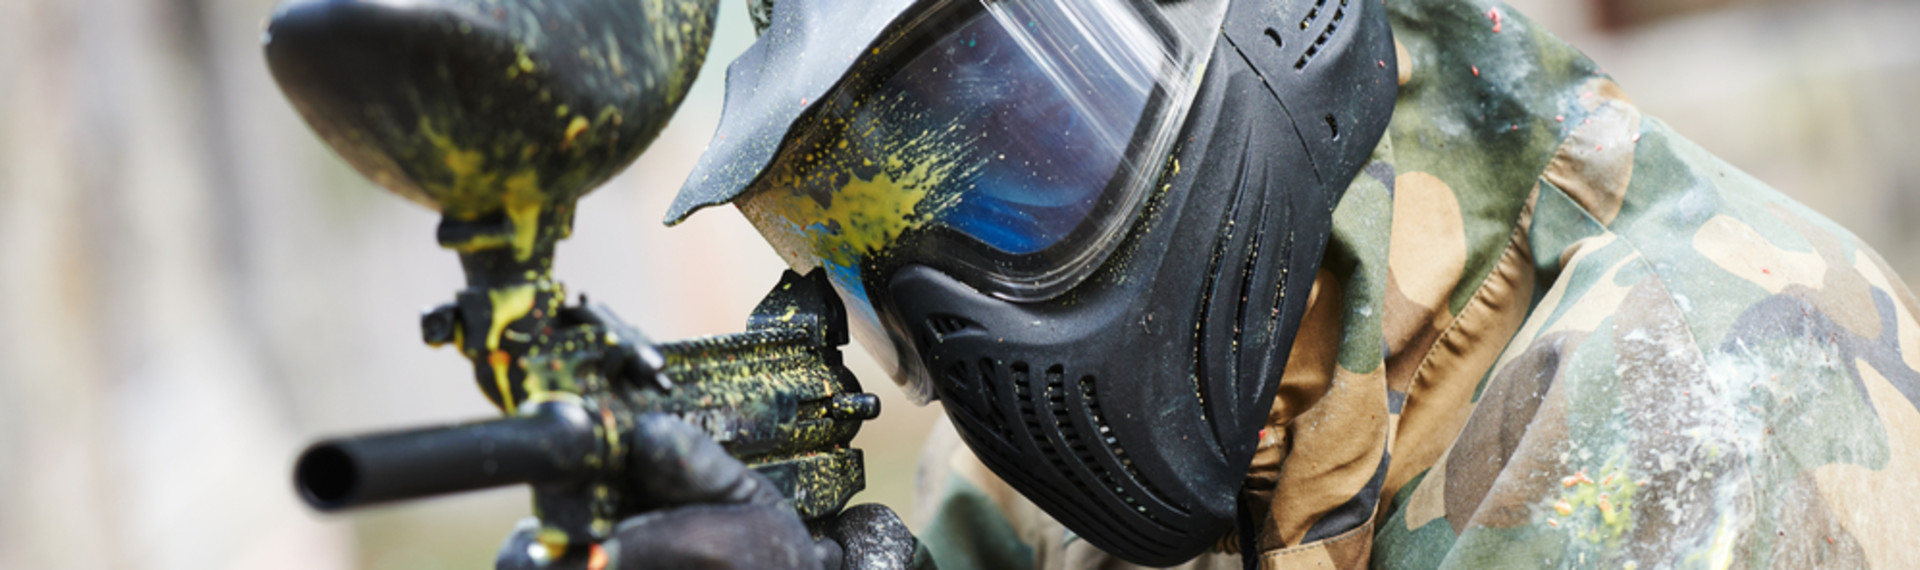 Paintball in Amsterdam | Der ultimative JGA-Spaß | Pissup Reisen